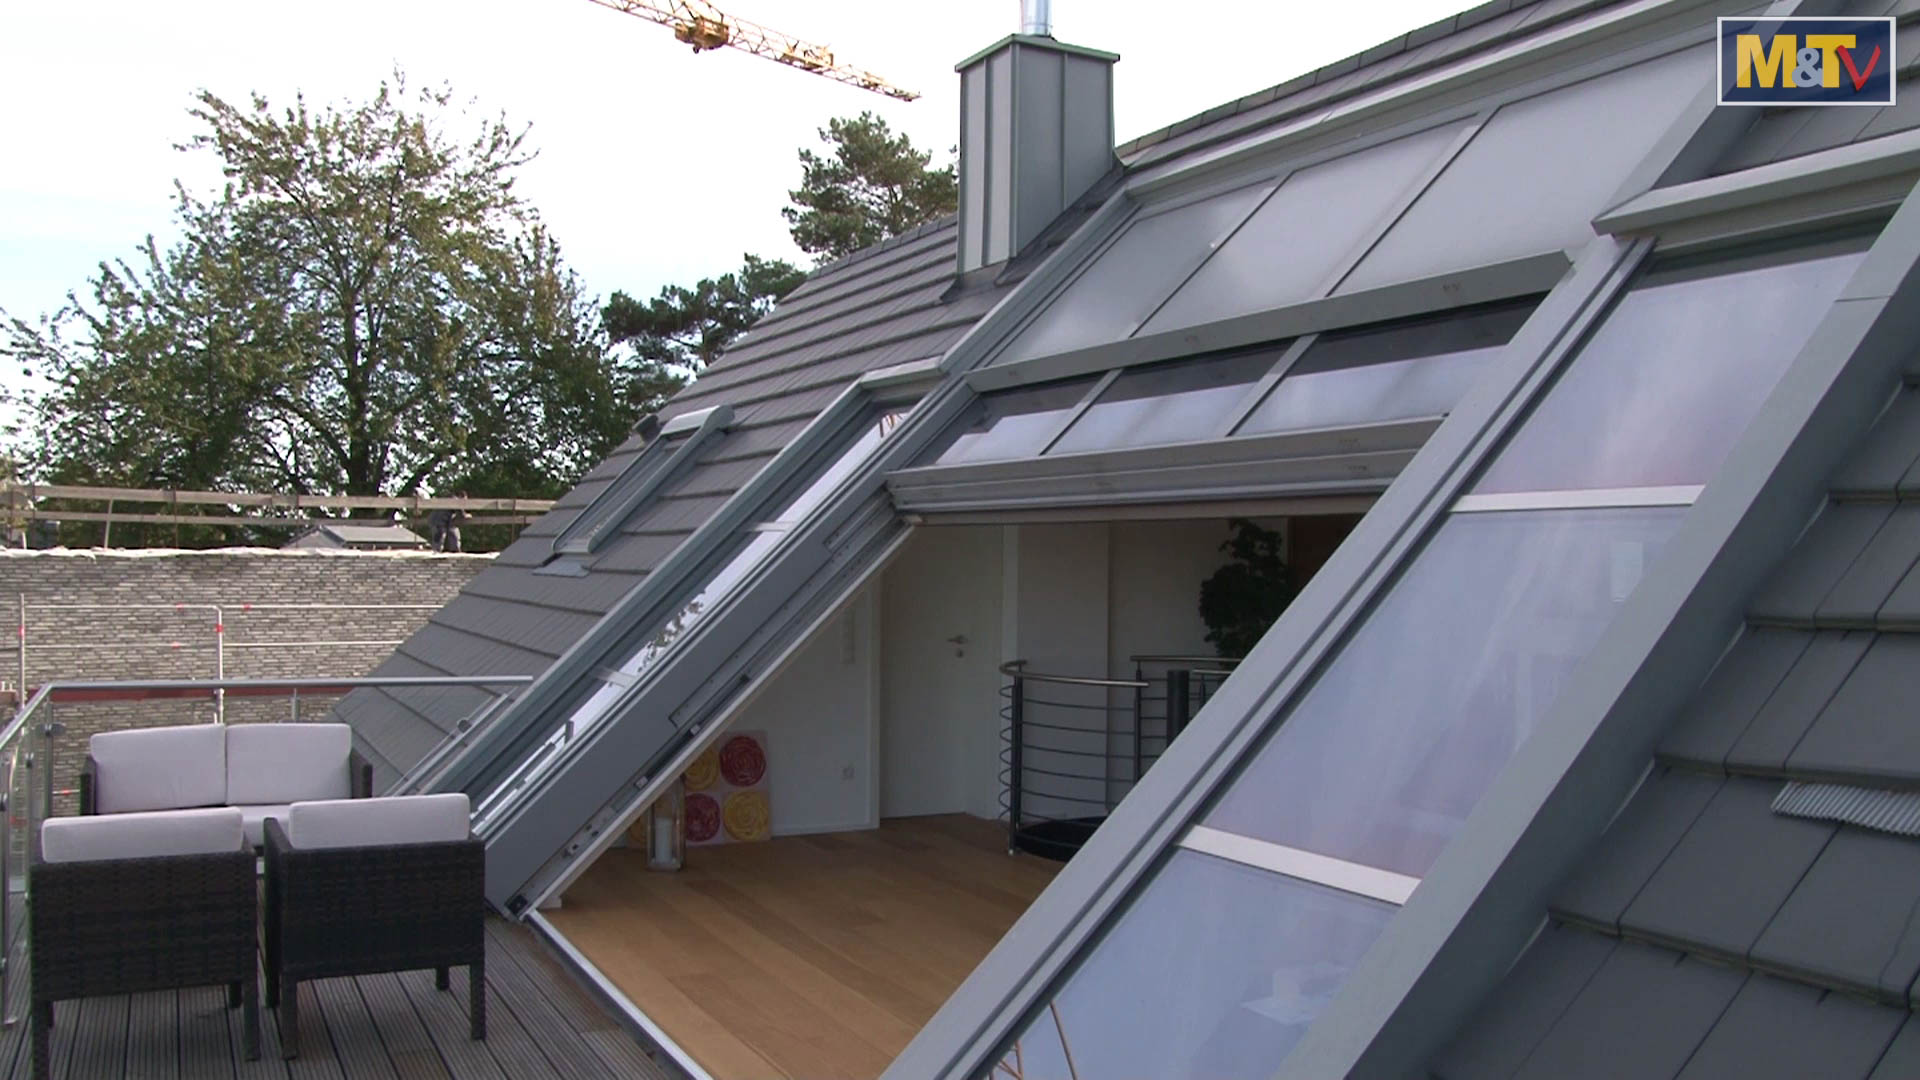 OpenAir sliding roof in Bonn (object 1074). 4-part OpenAir roof sliding window